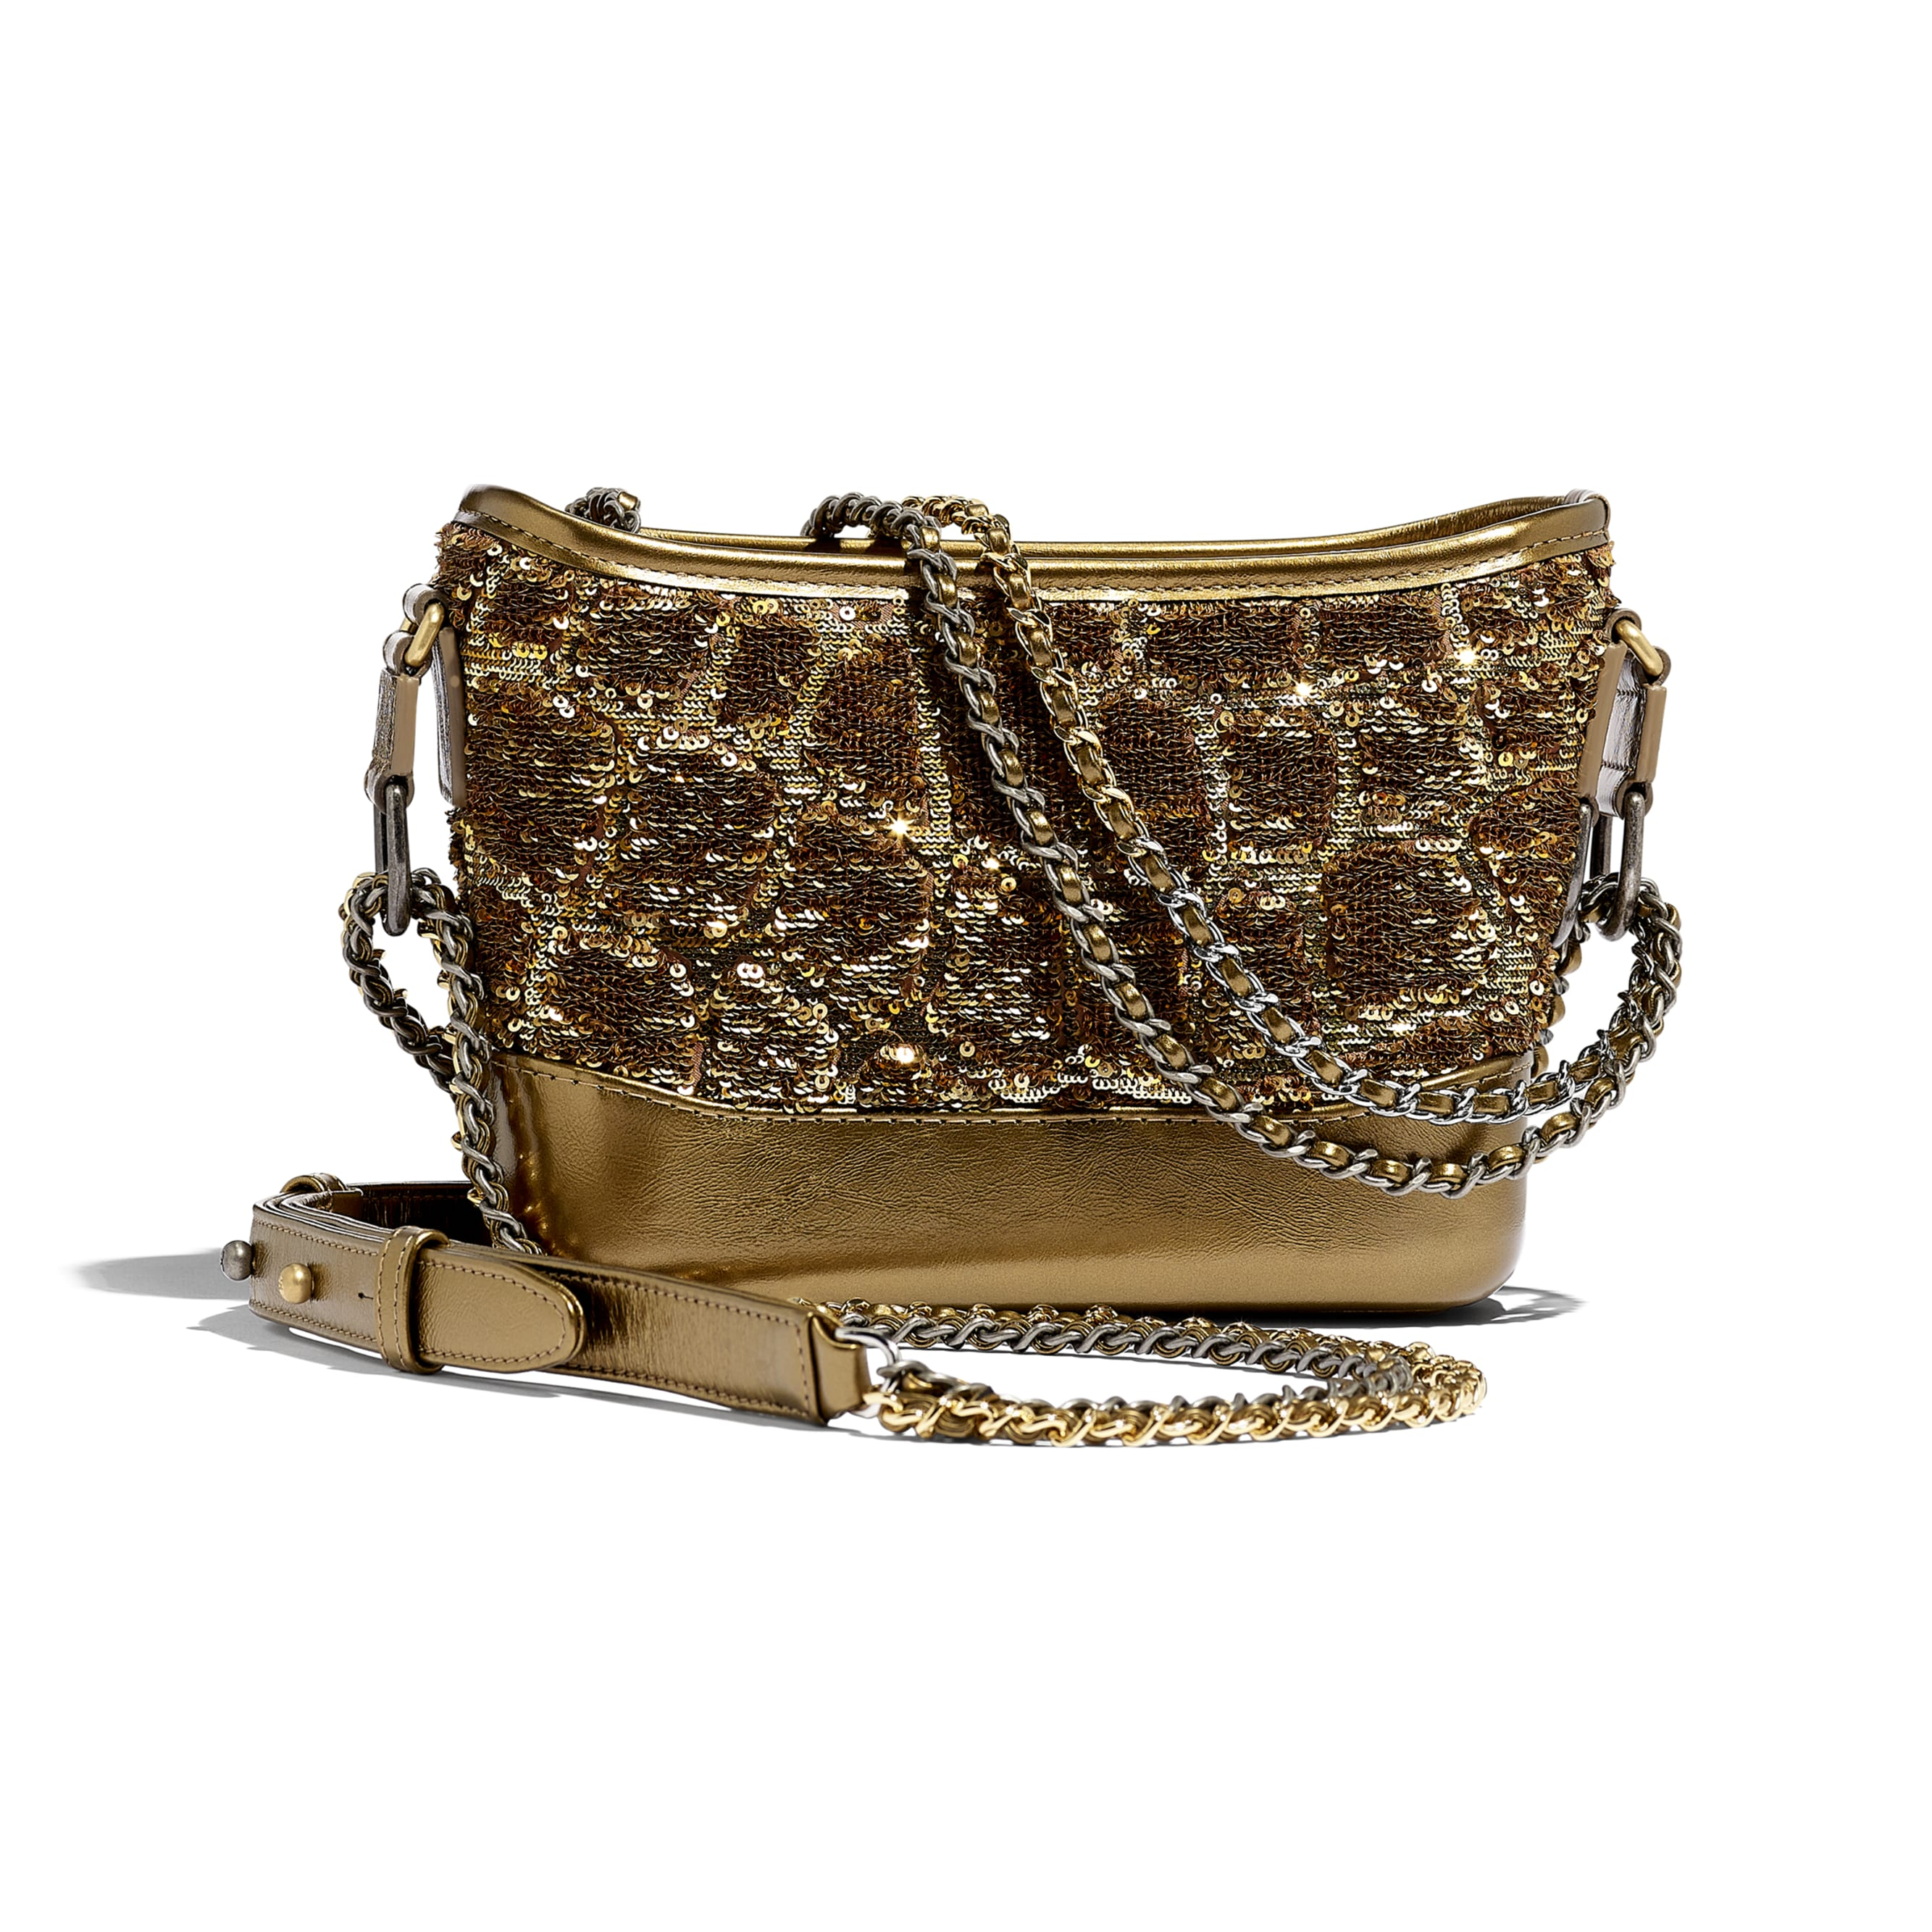 CHANEL'S GABRIELLE Small Hobo Bag - Gold & Copper - Sequins, Calfksin, Silver-Tone & Gold-Tone Metal - Alternative view - see standard sized version